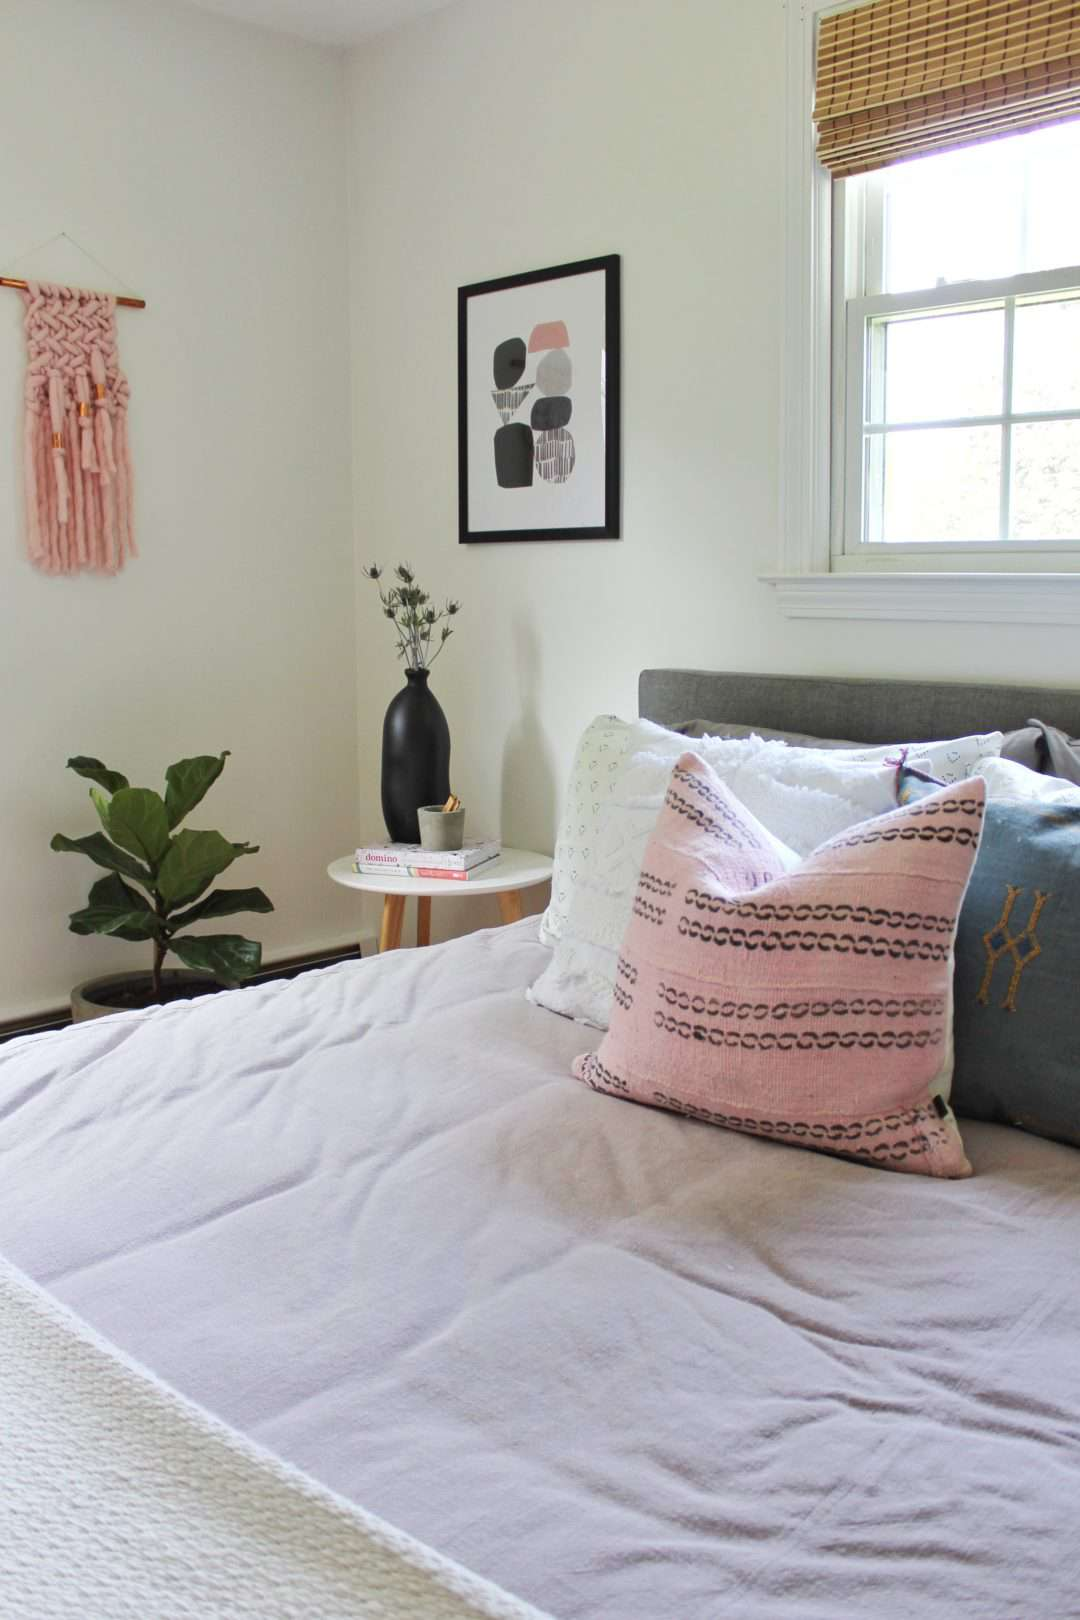 A bedroom with a lavender bedspread and pink and blue throw pillows